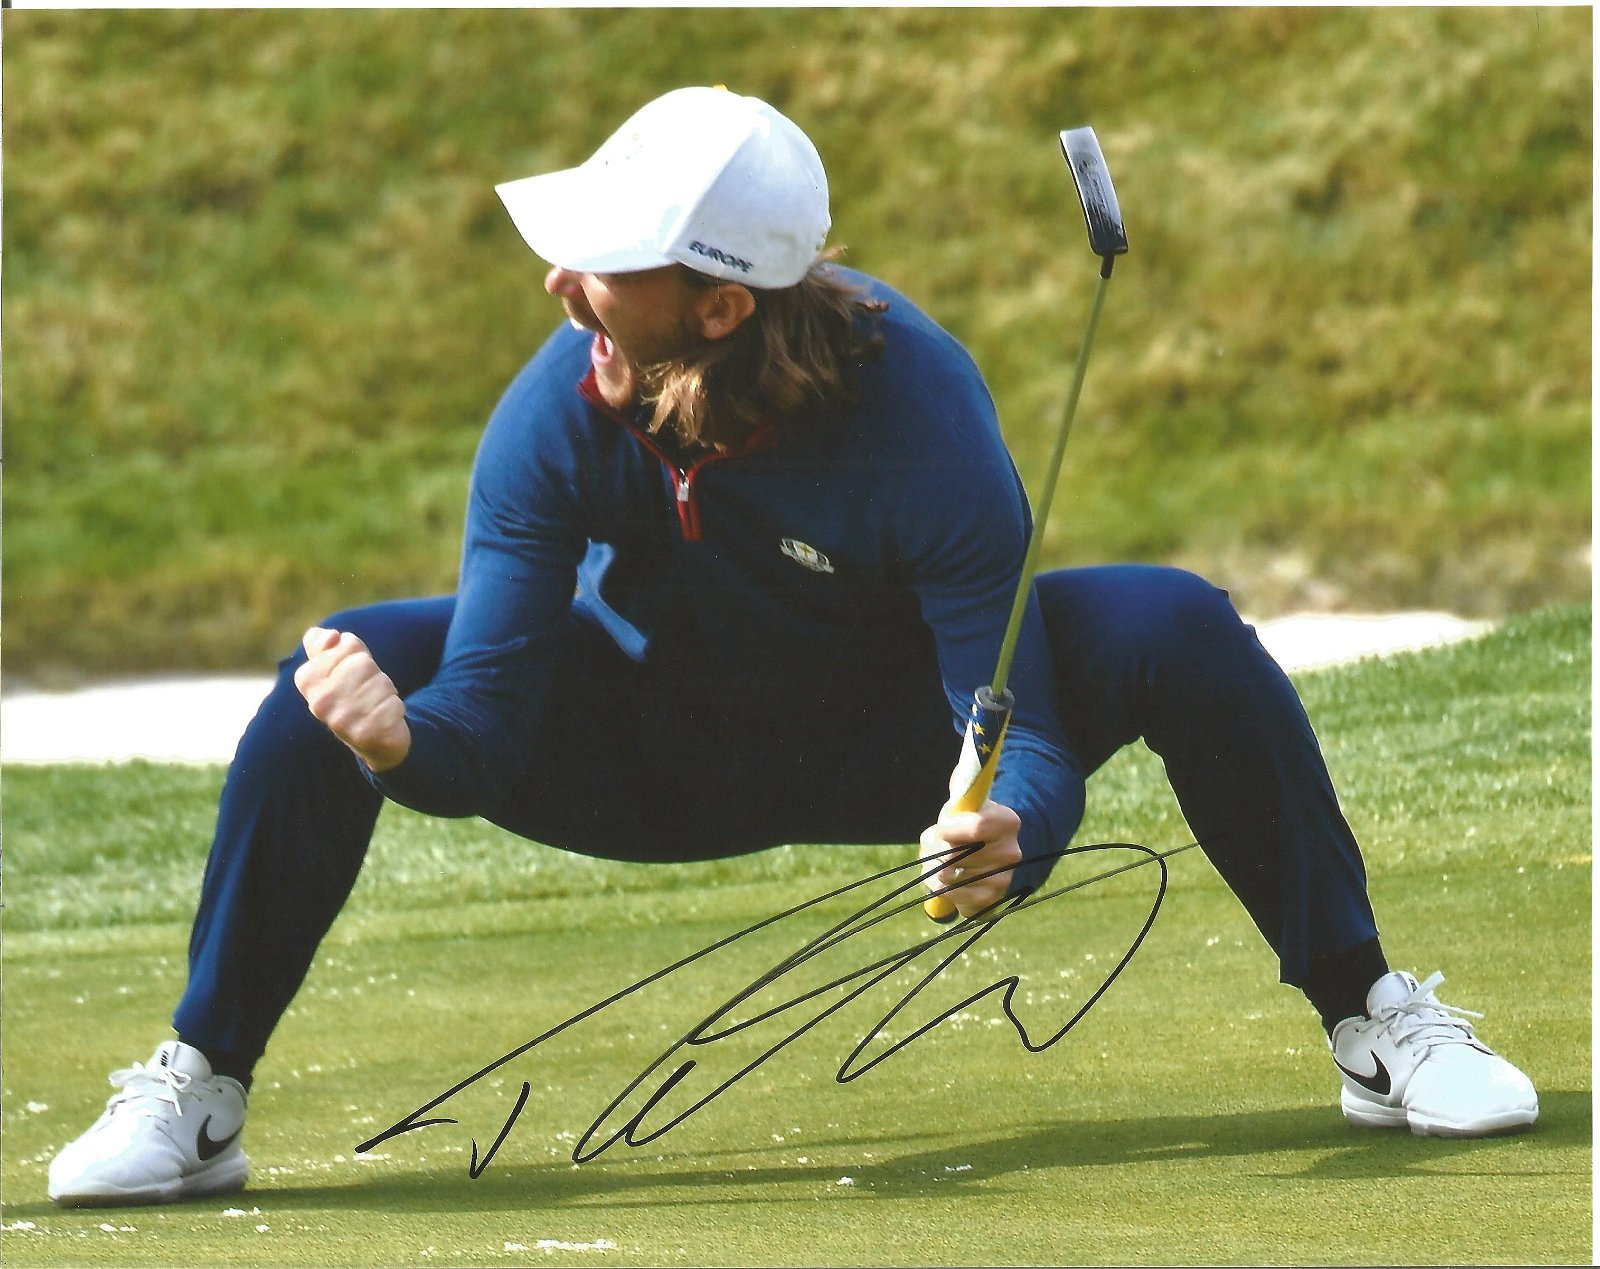 Tommy Fleetwood Signed Ryder Cup Golf 8x10 Photo. Good